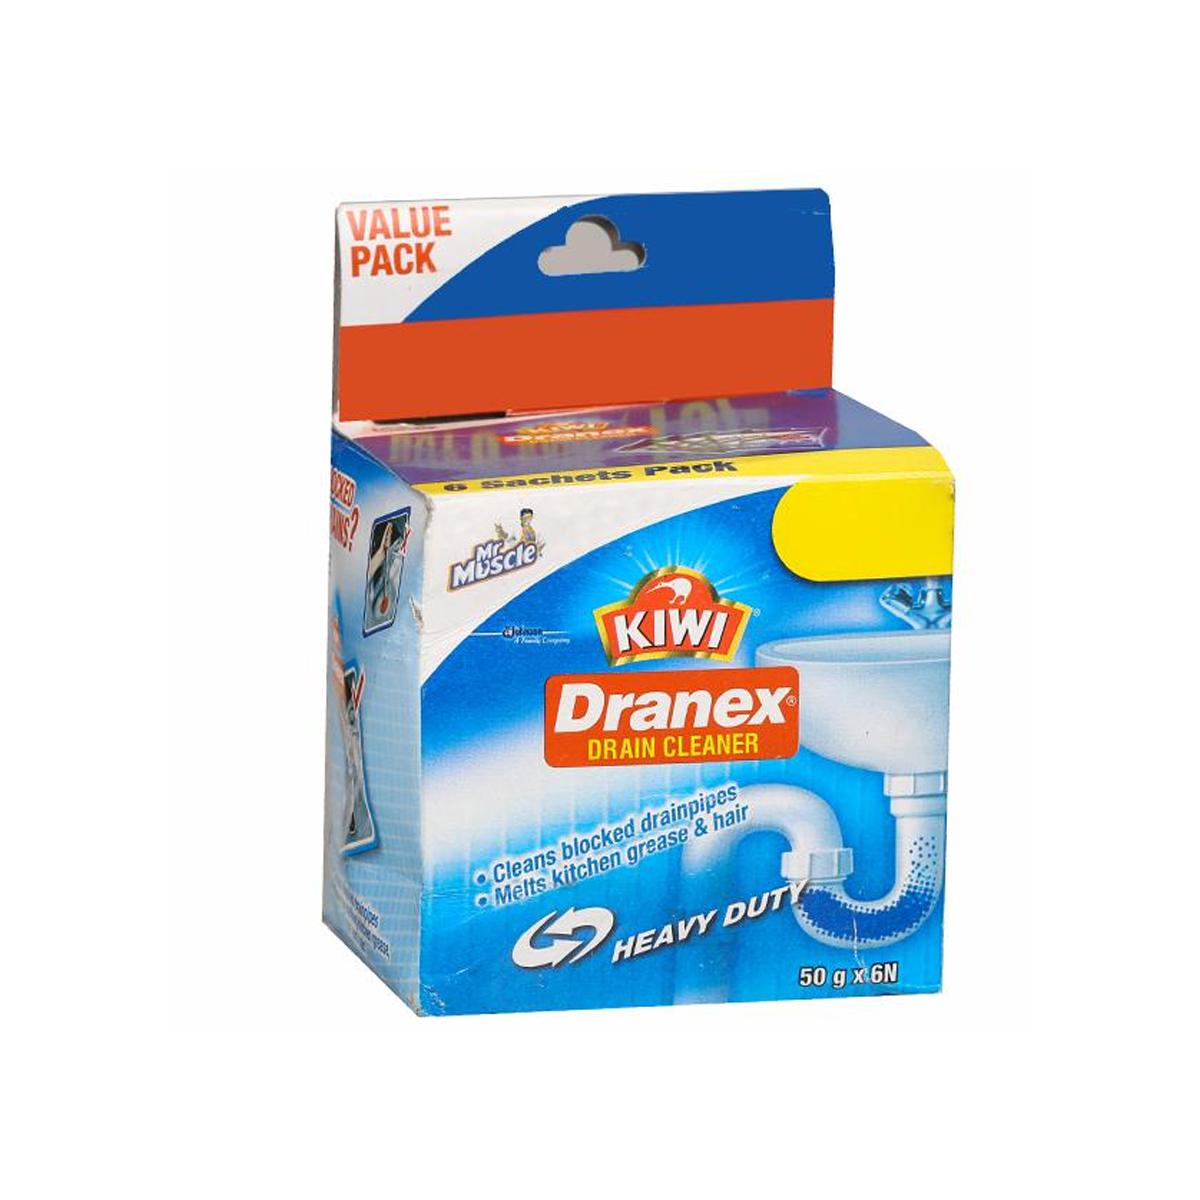 KIWI DRANEX DRAIN CLEANER 50GM